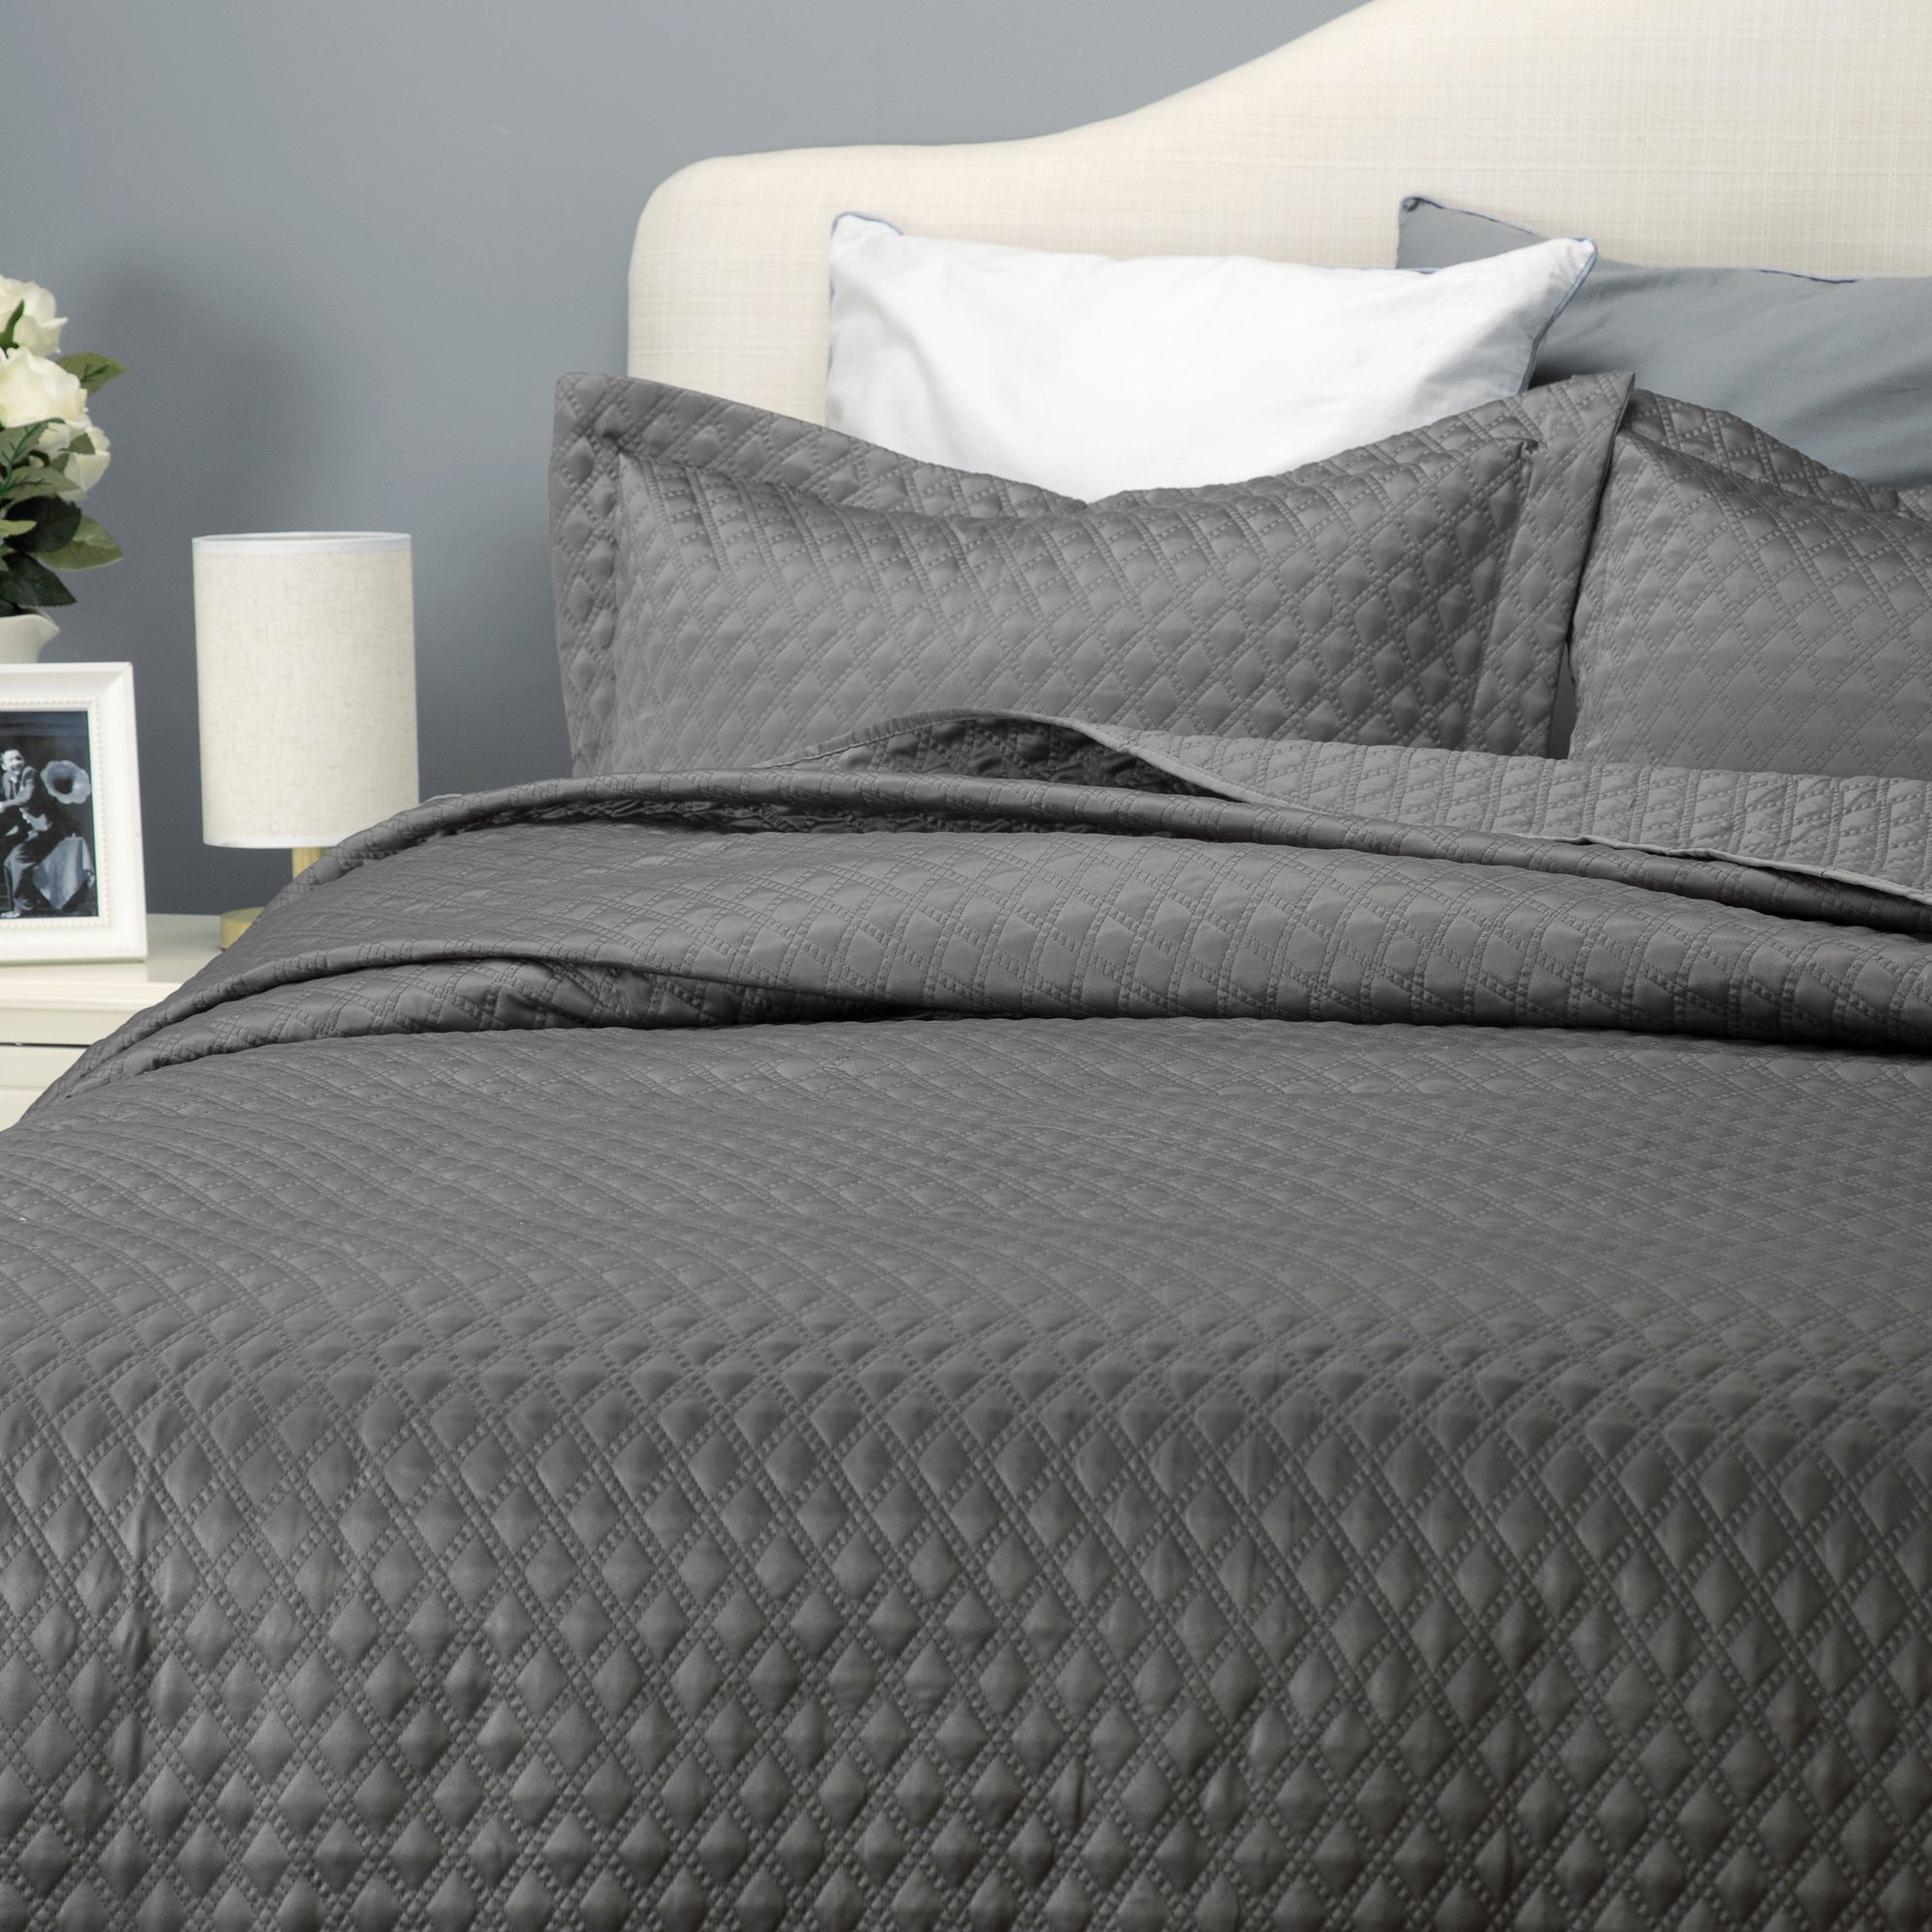 darkgray dark set coverlet ienjoy quilted damaskquilt product duvet damask cover gray home